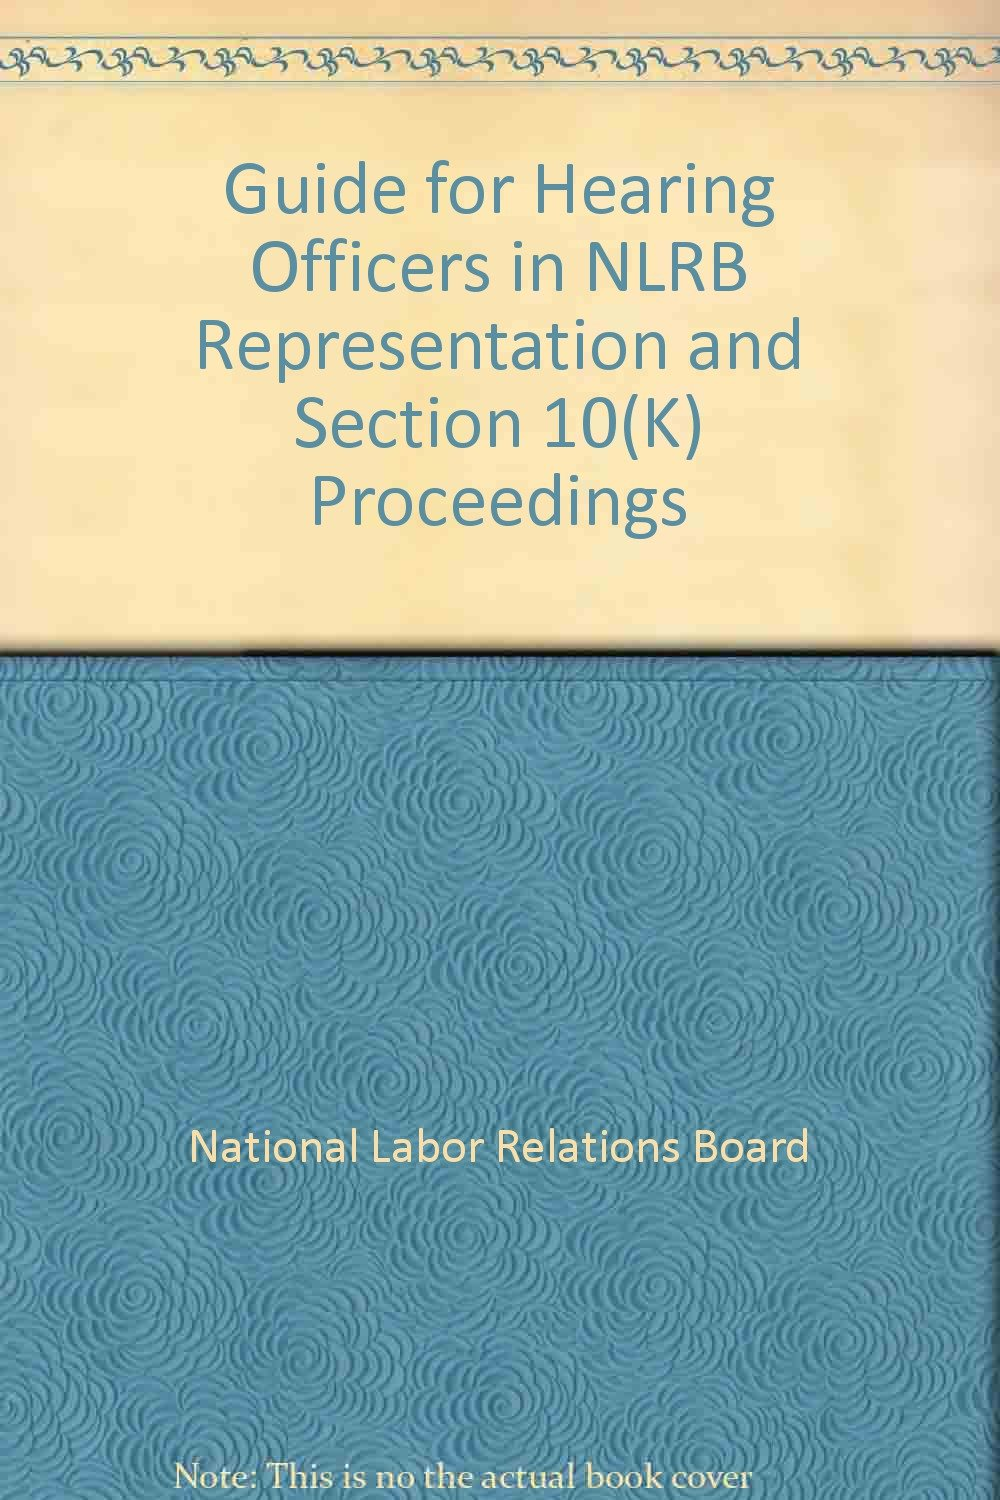 Guide for hearing officers in NLRB representation and Section 10(K) proceedings ebook